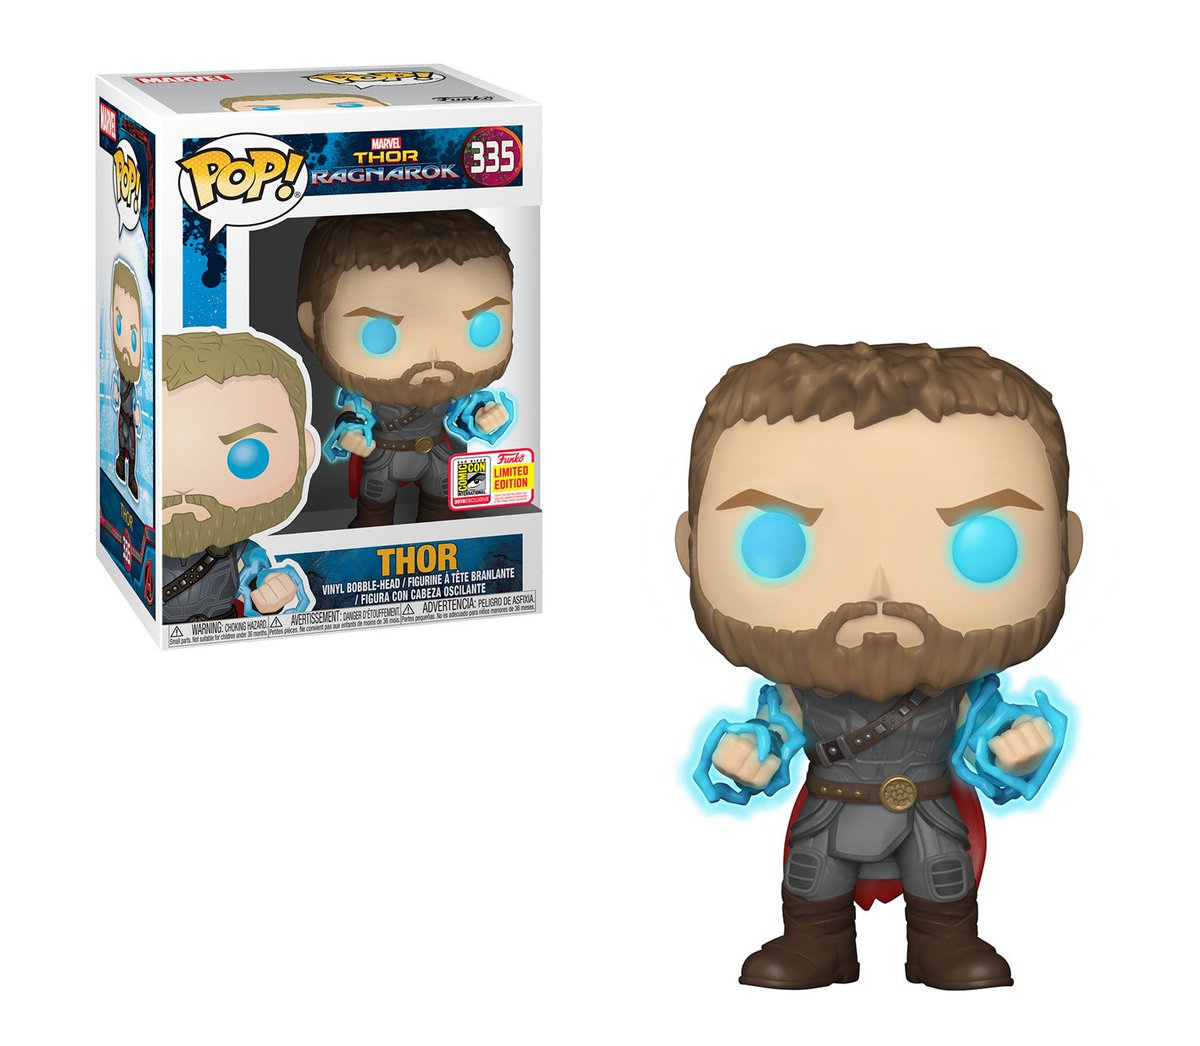 RT & follow @OriginalFunko for a chance to WIN a #SDCC Exclusive Thor Pop!